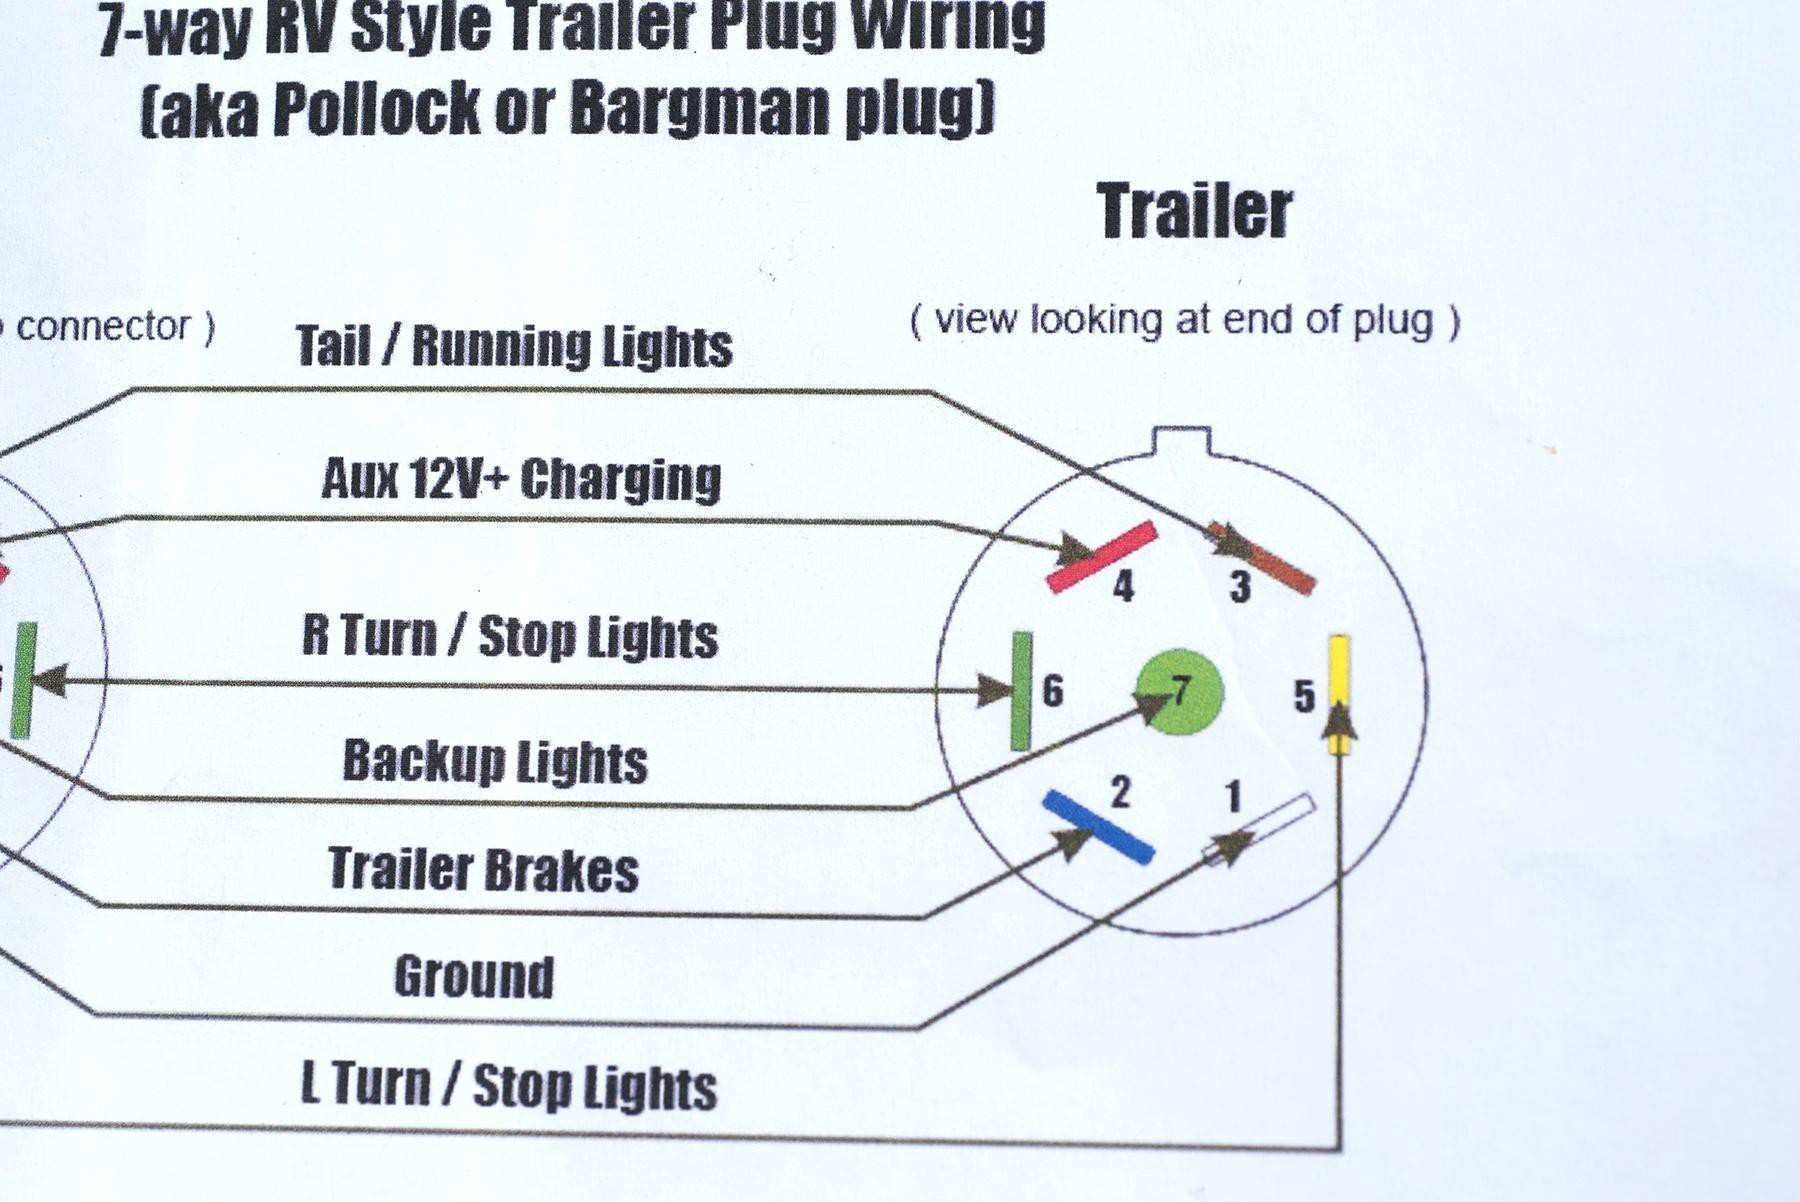 Phillips 7 Pin Trailer Connector Wiring Diagram | Wiring Diagram - Phillips 7 Way Trailer Plug Wiring Diagram